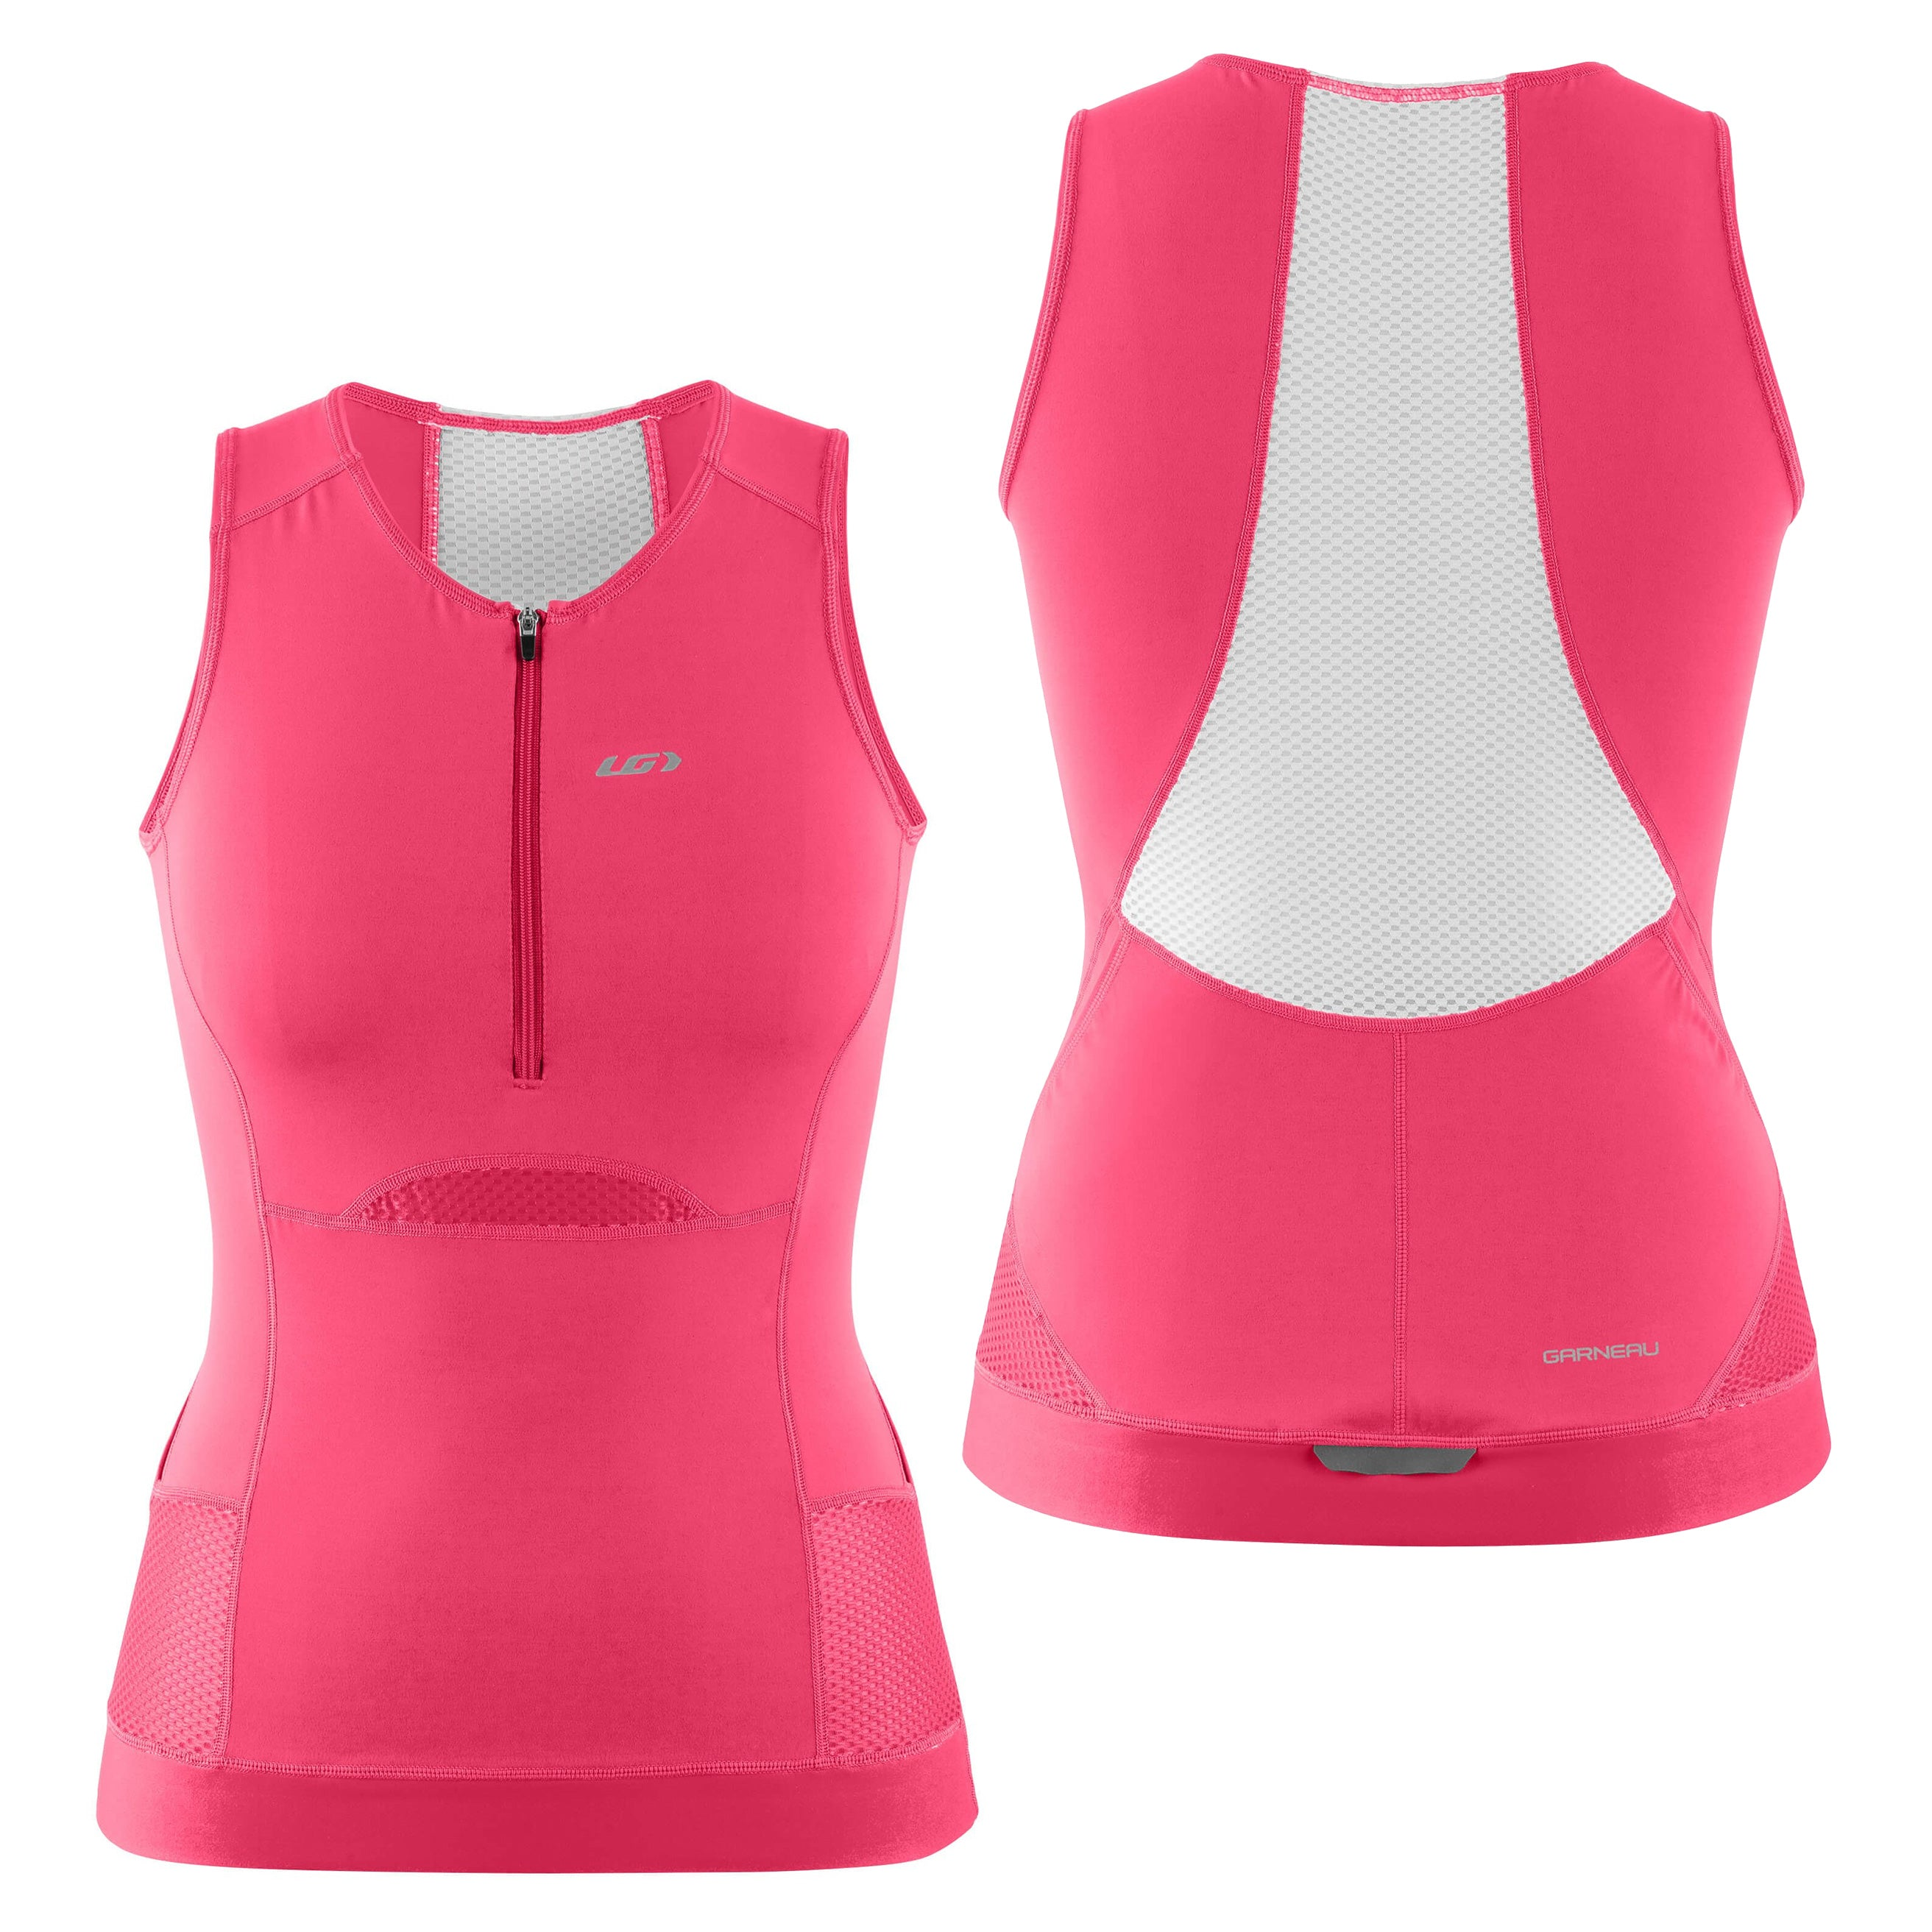 Louis Garneau Women's Sprint Tri Sleeveless Jersey